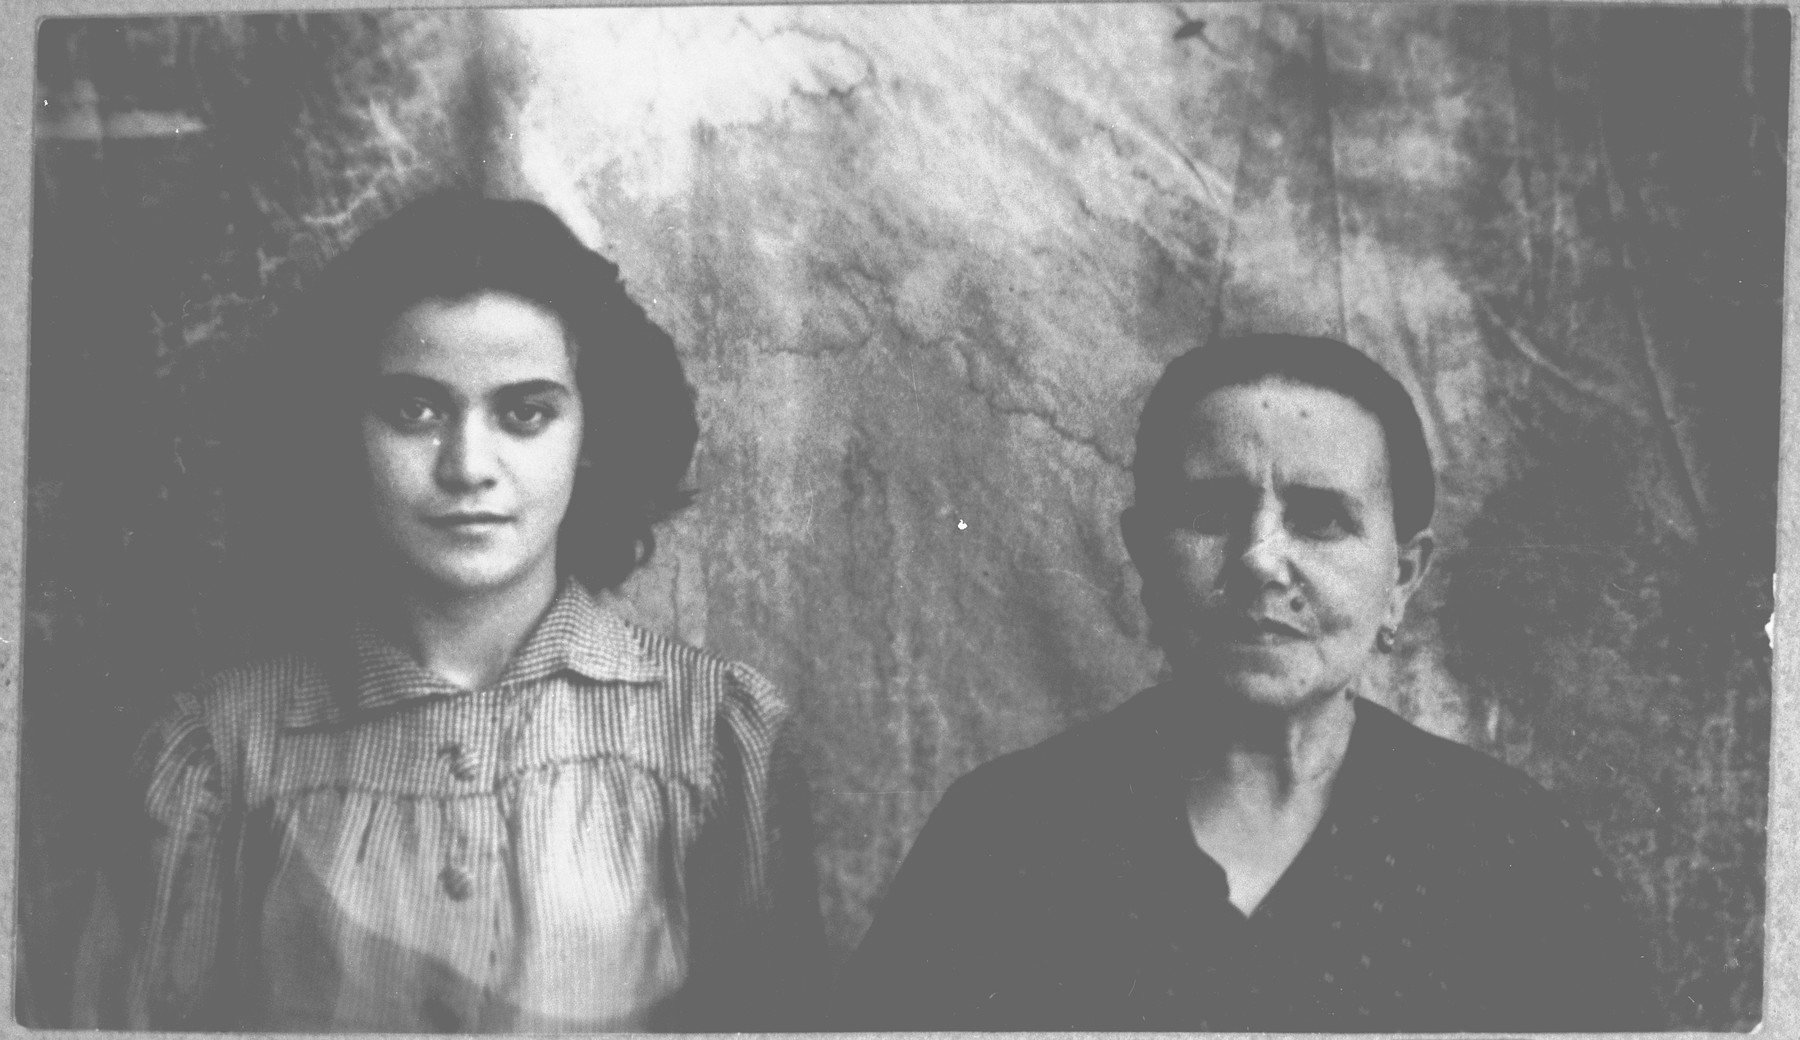 Portrait of Rebeka Kamchi, wife of Mushon Kamchi, and Mathilda Kamchi, daughter of Mushon Kamchi.  Mathilda was a student.  They lived at Skopyanska 76 in Bitola.